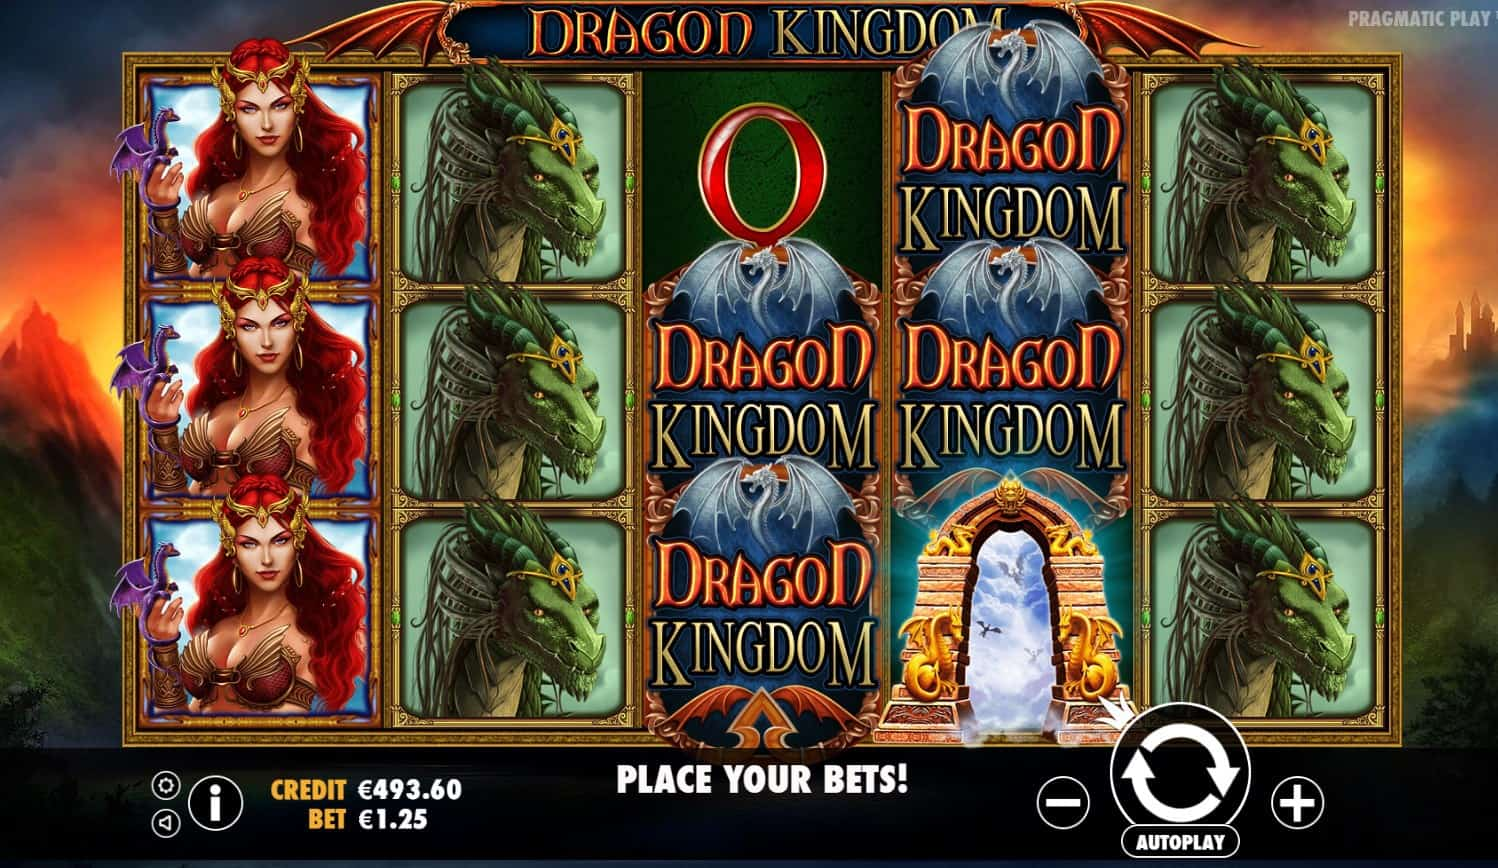 pragmatic play - dragon kingdom - reels - casinogroundsdotcom